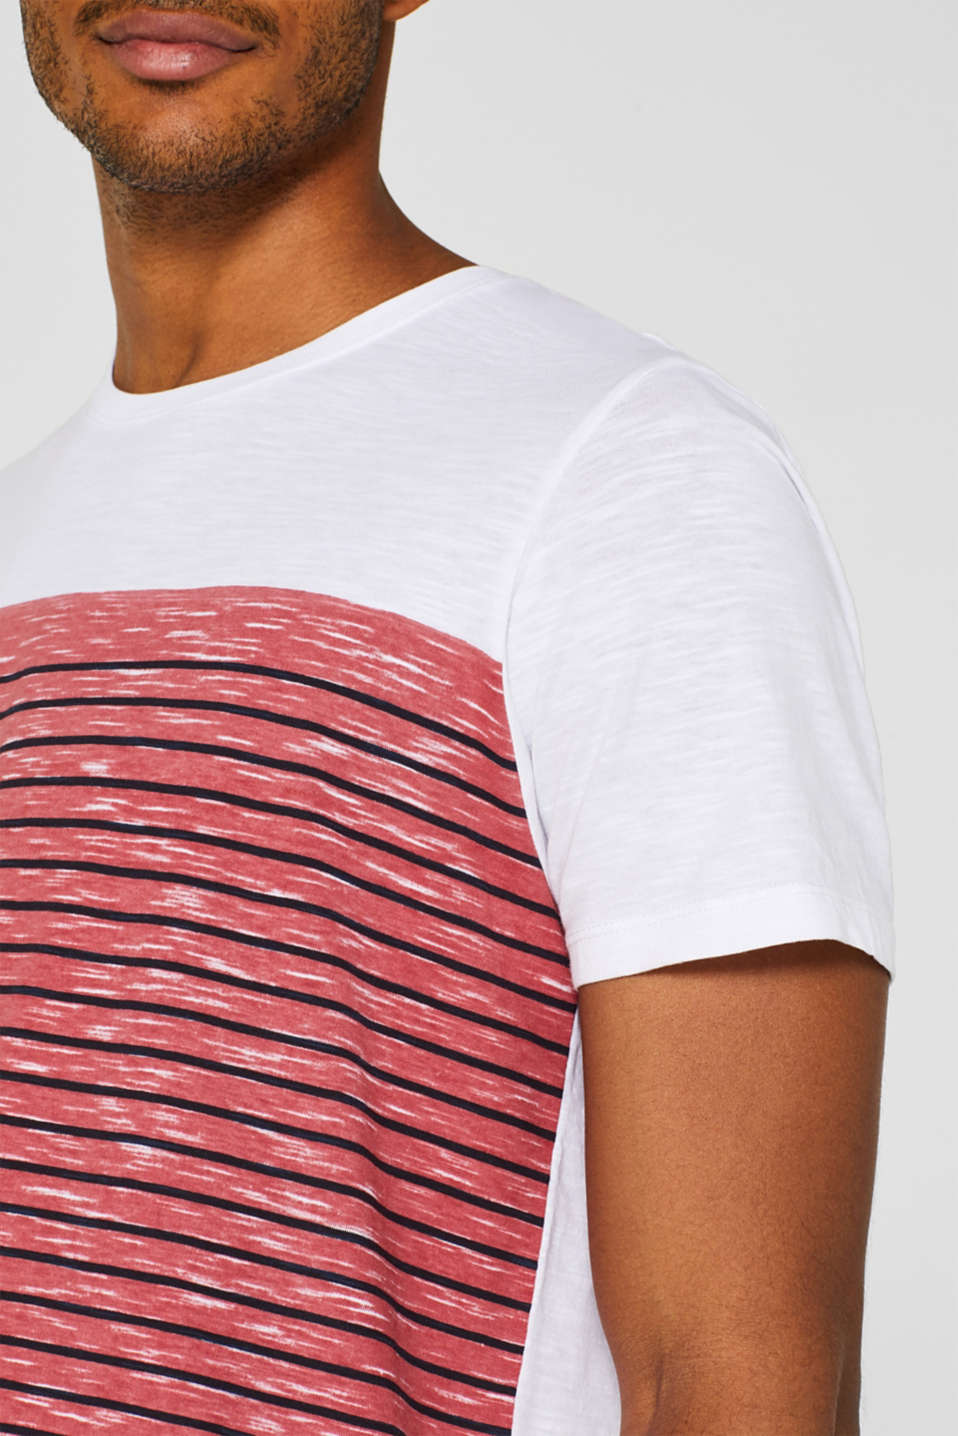 Jersey T-shirt with stripes, 100% cotton, BLUSH, detail image number 1